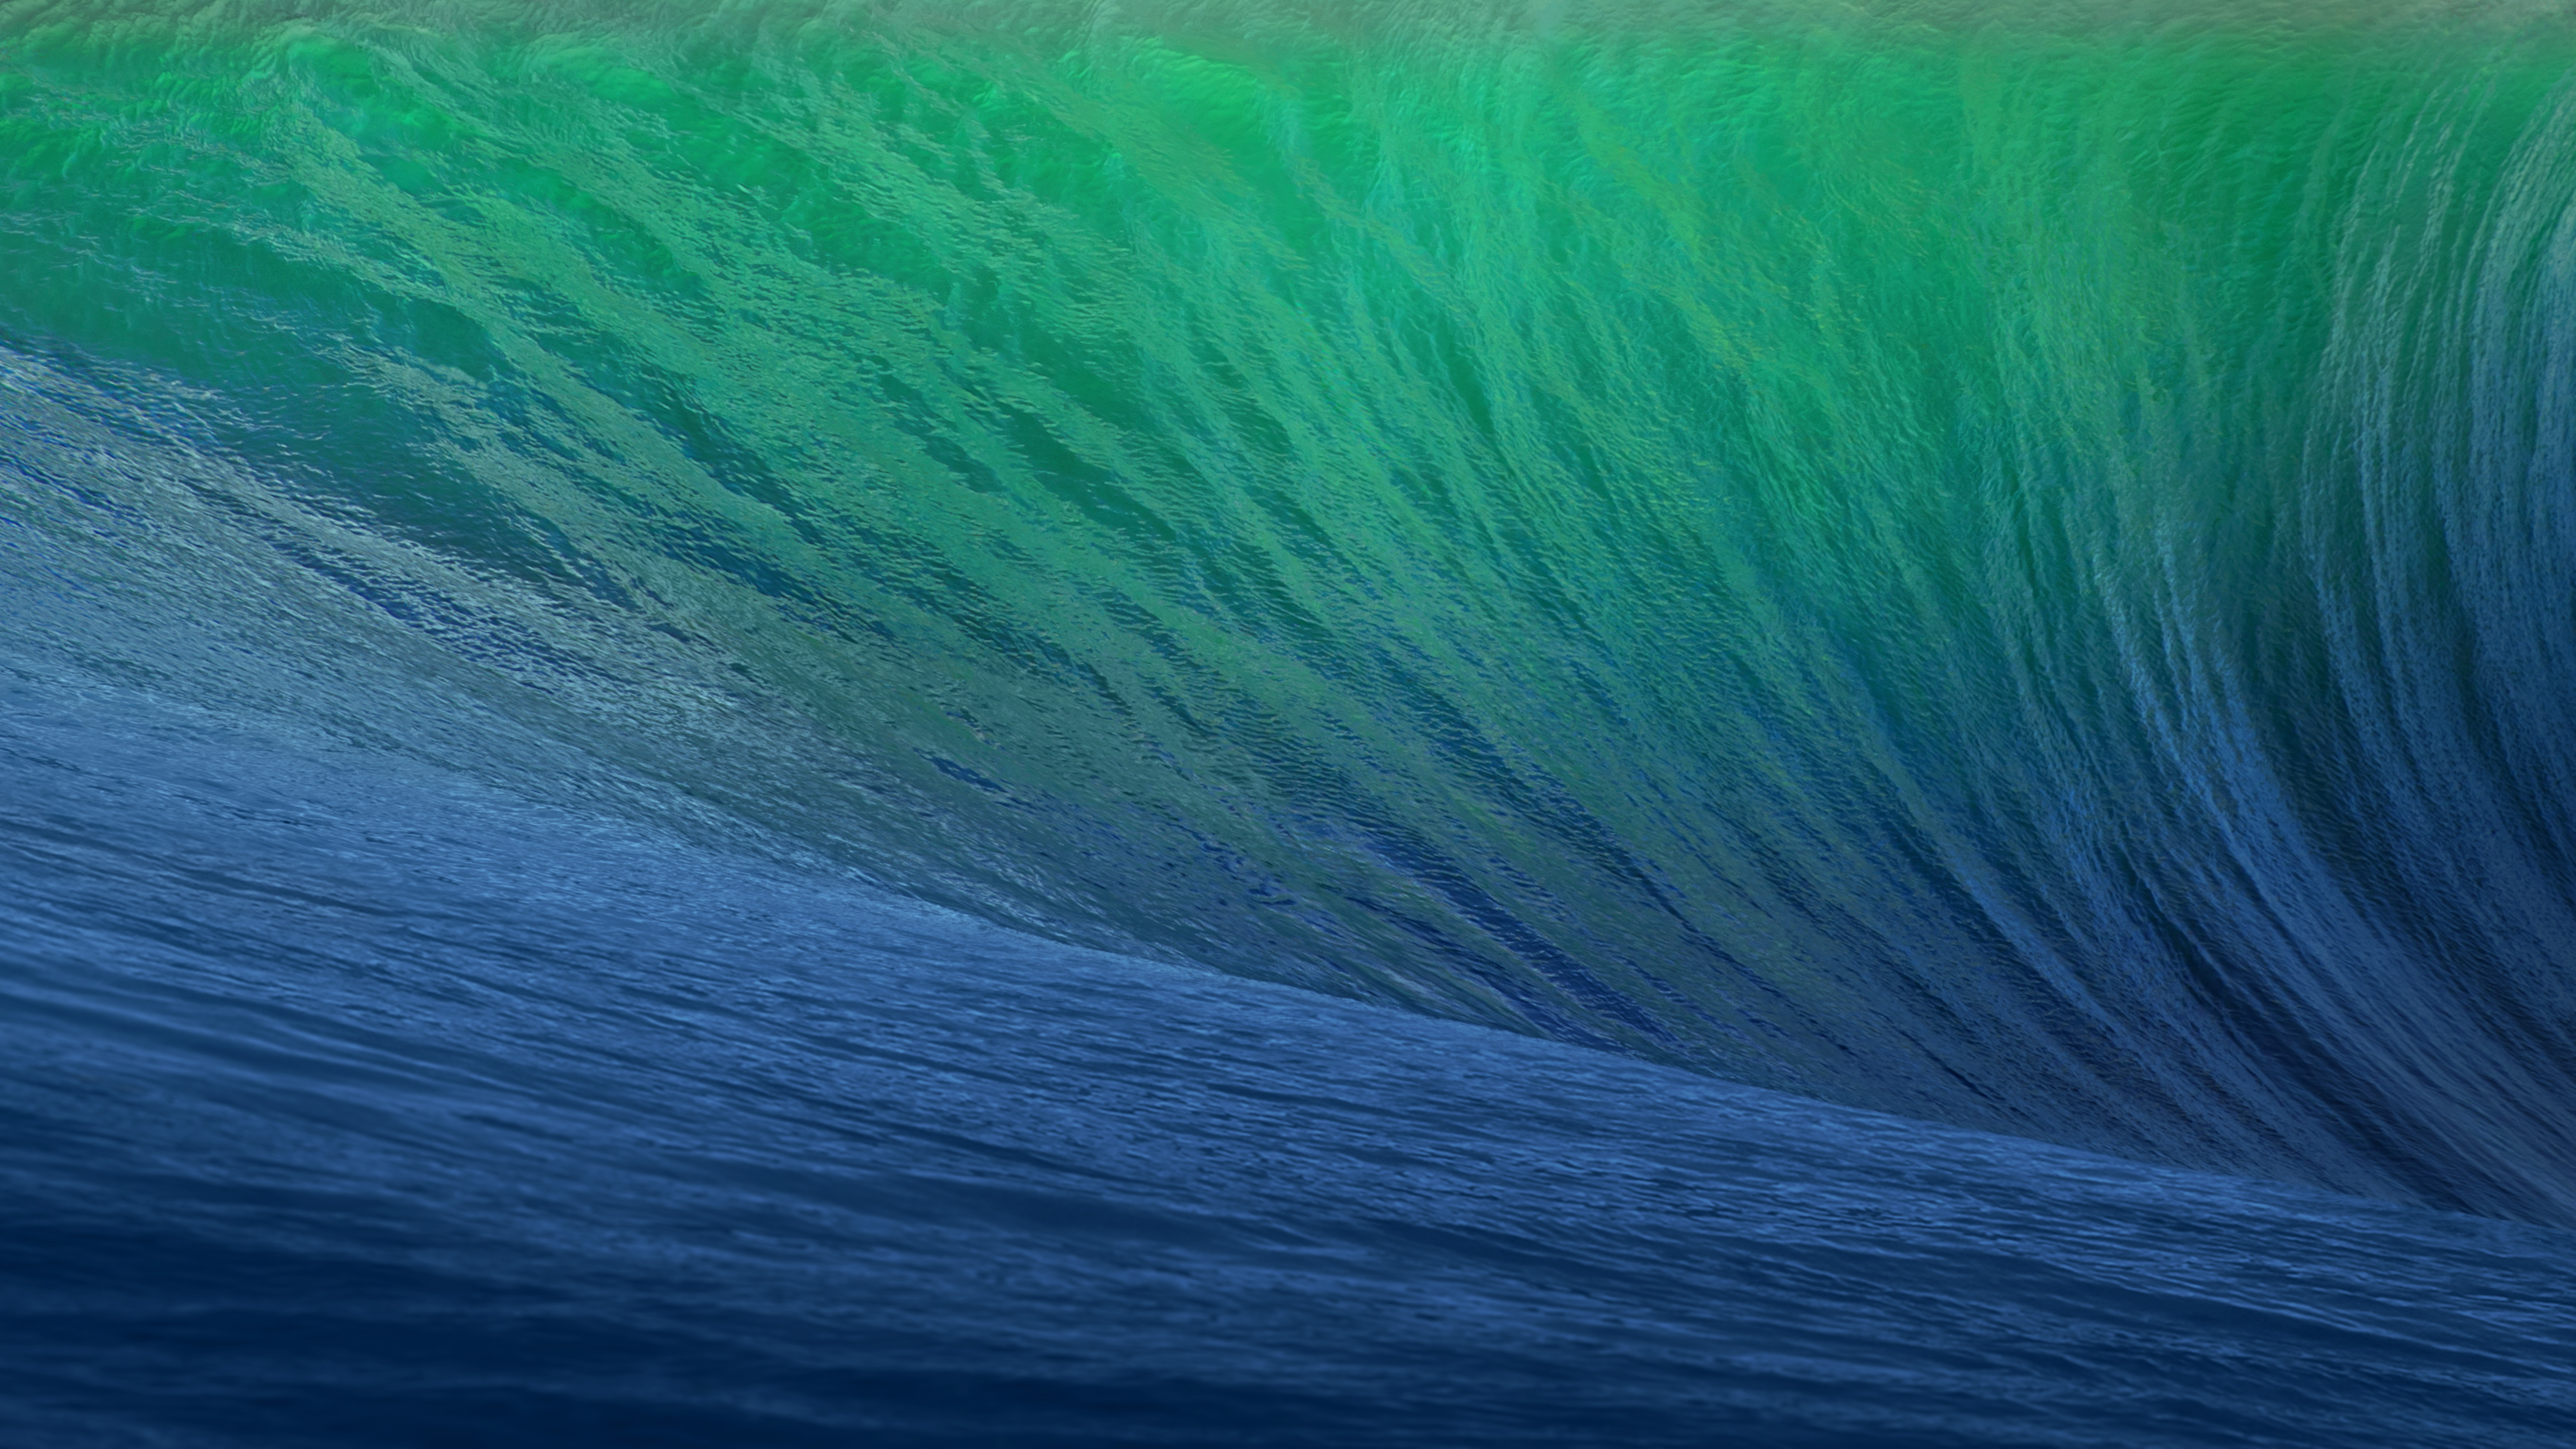 OS X Mavericks - Wallpaper